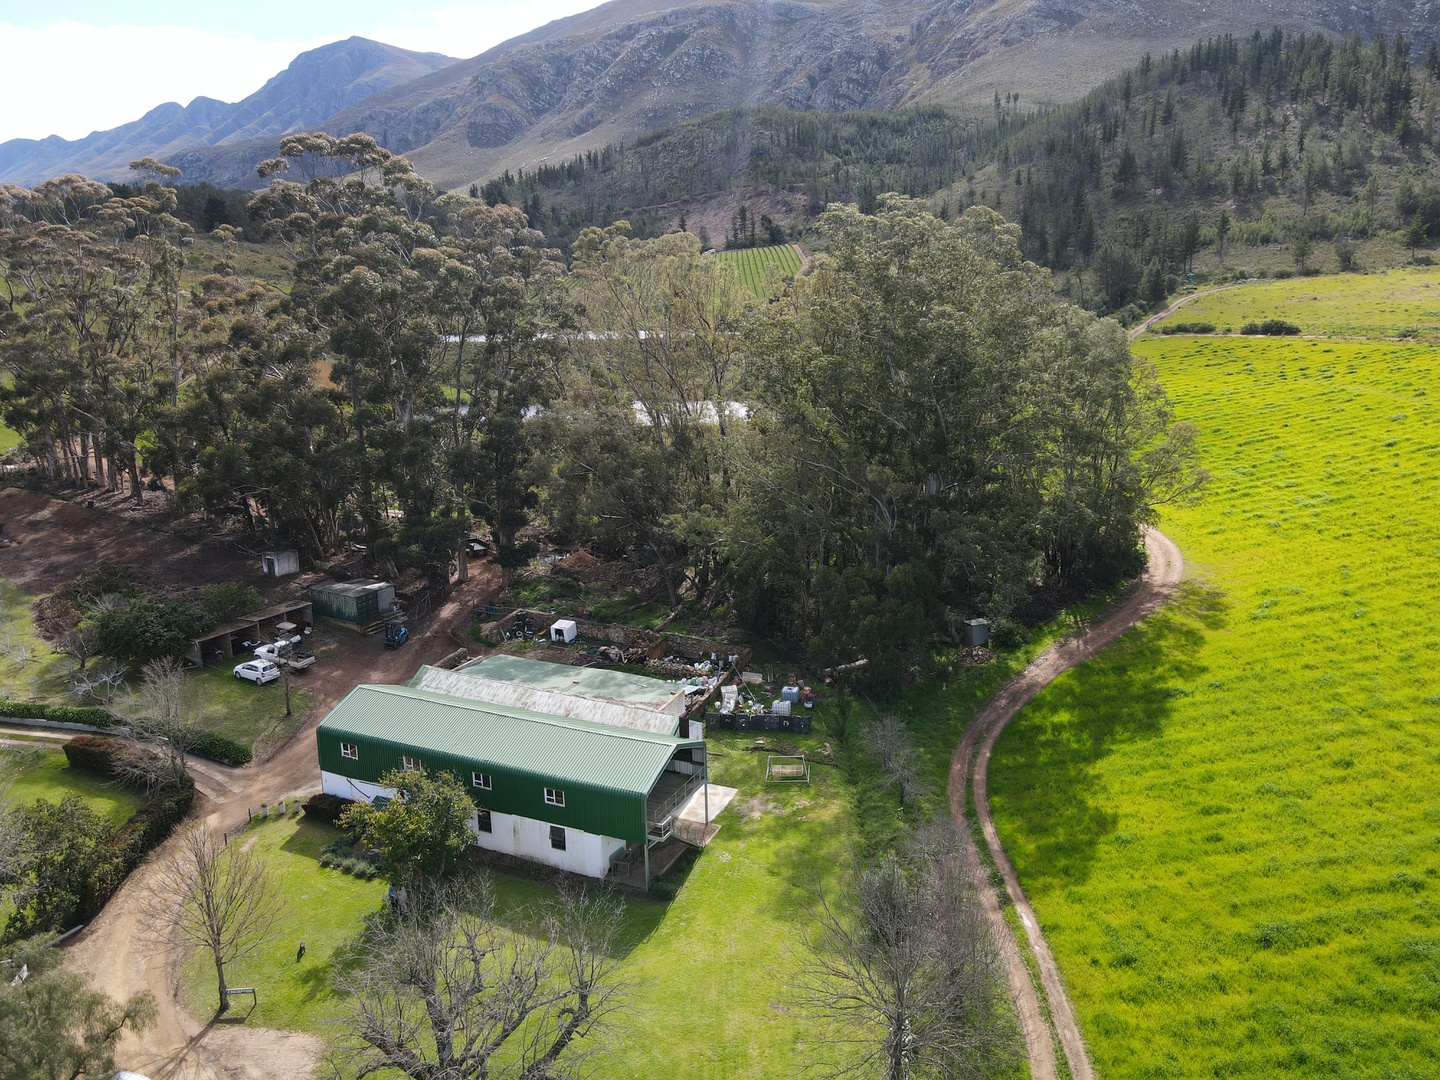 Land in Swellendam - Shed with brewery